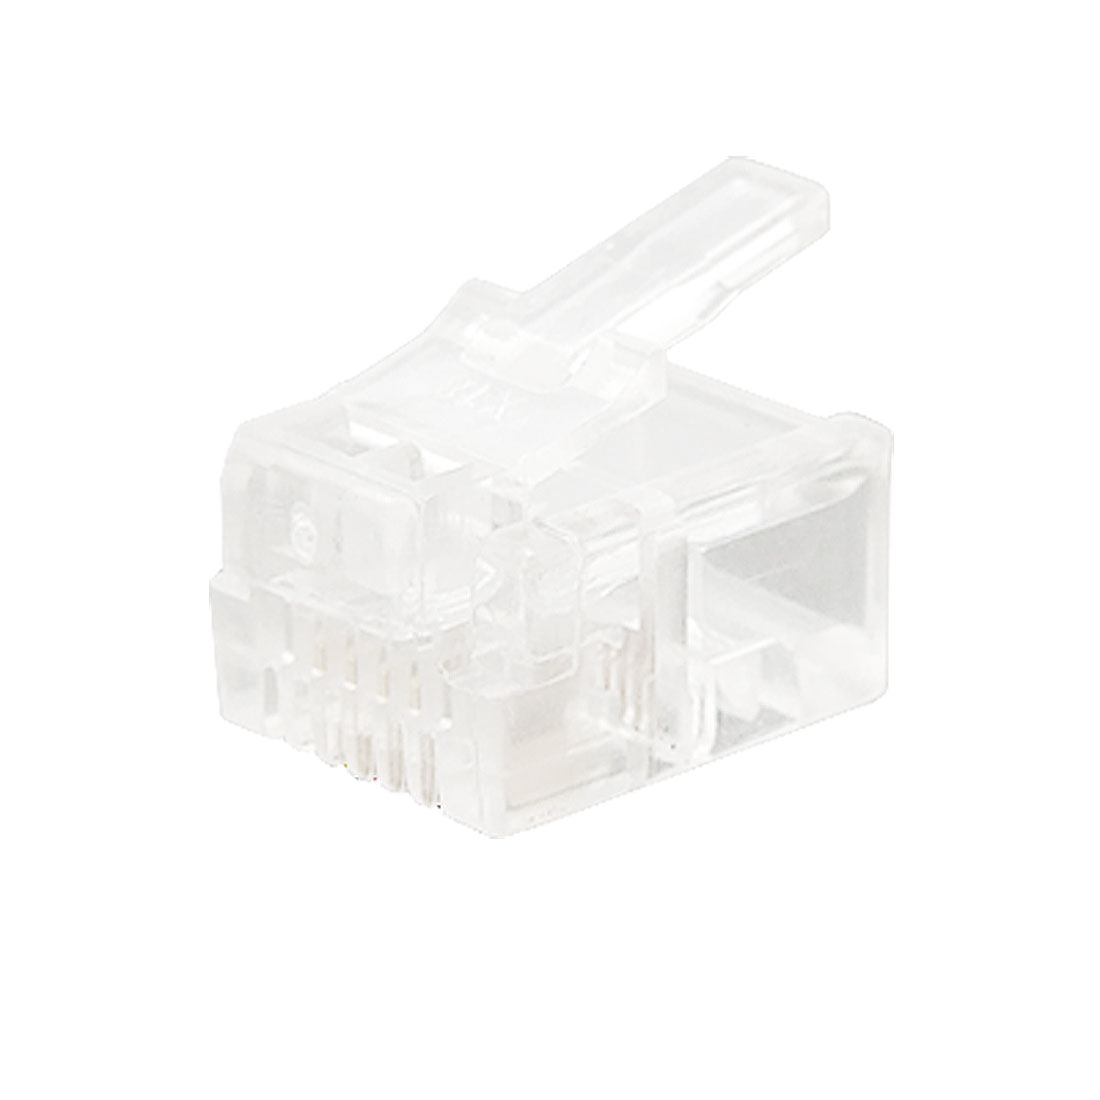 100 PCS Clear RJ11 RJ-11 Modular Plug Telephone Connector 6P4C Cat3